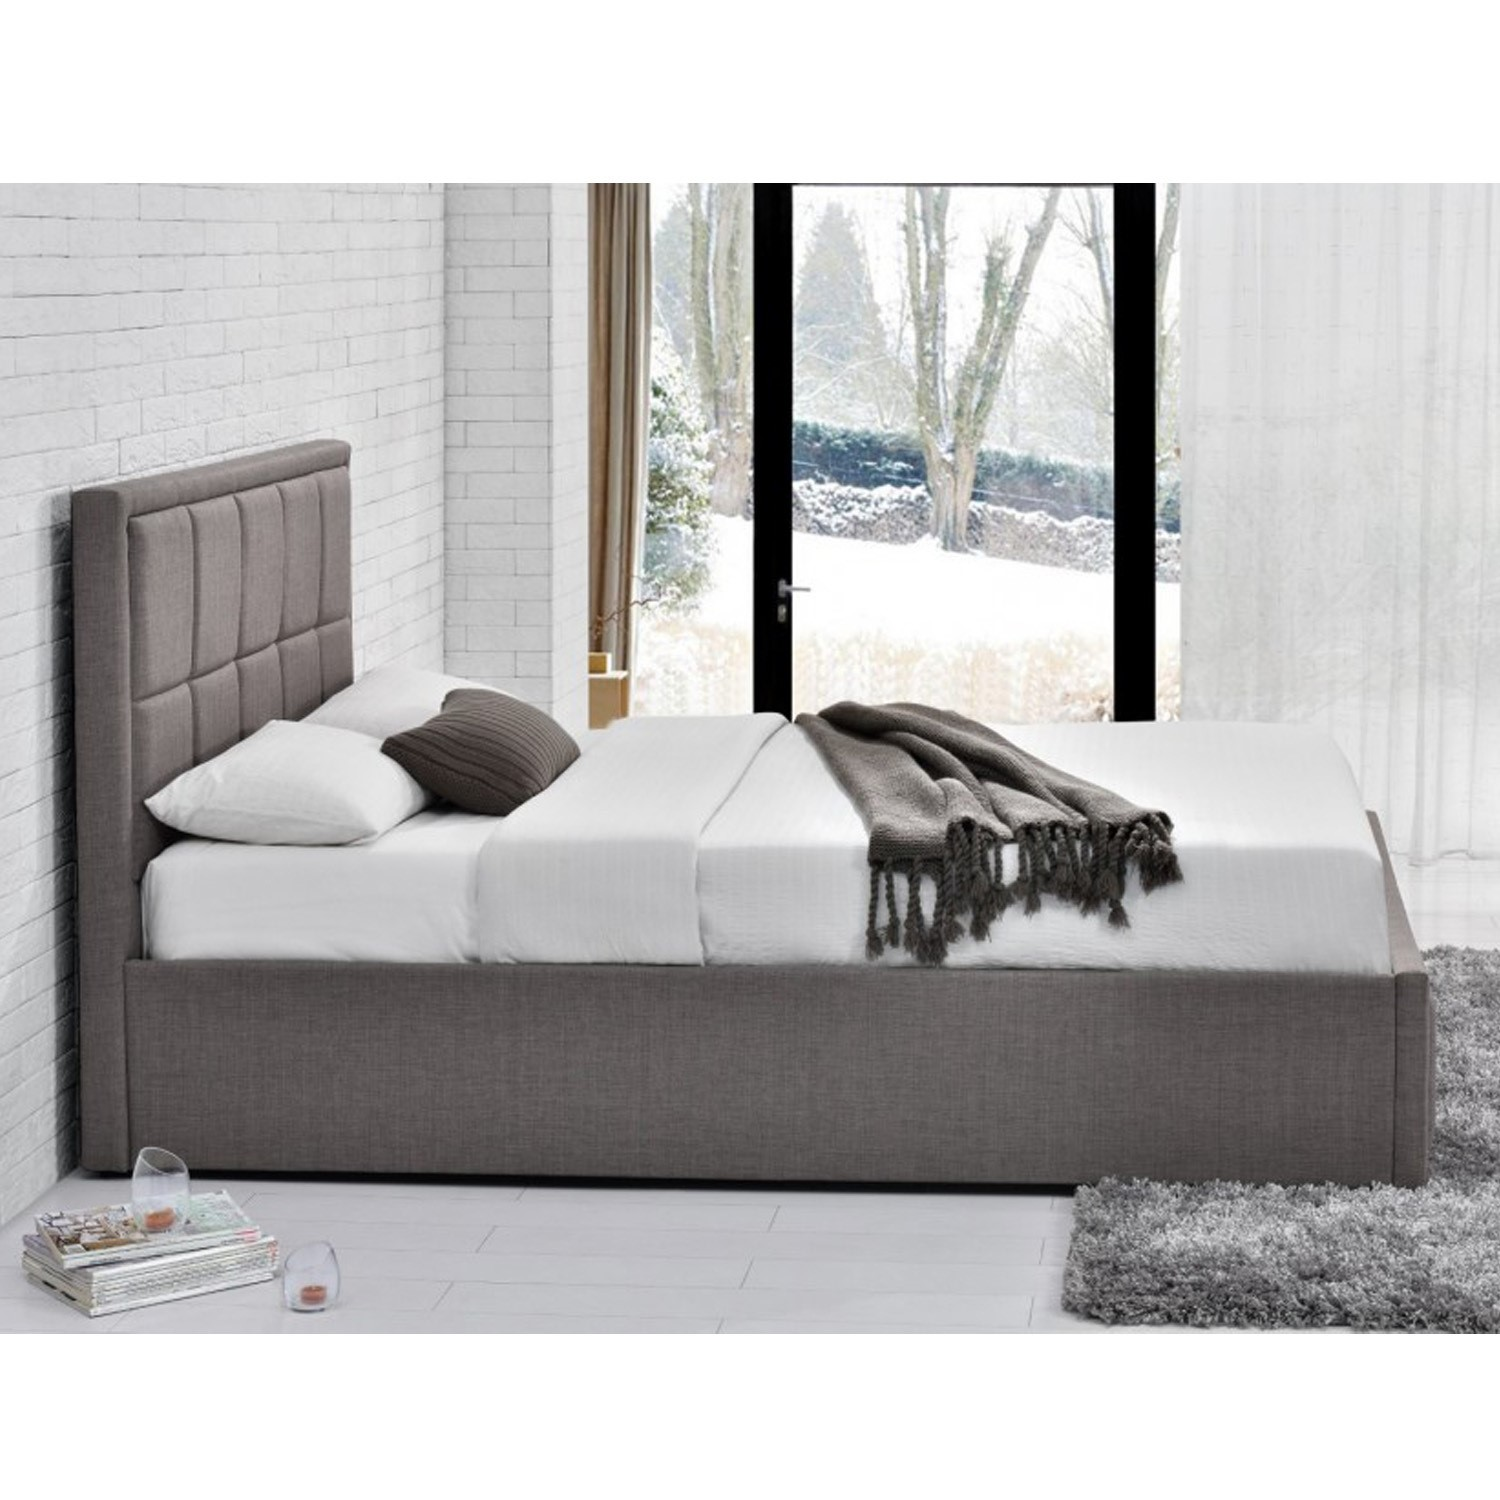 Ottoman Beds Clean Muji Living Couch Ottoman Acrylic Magazine